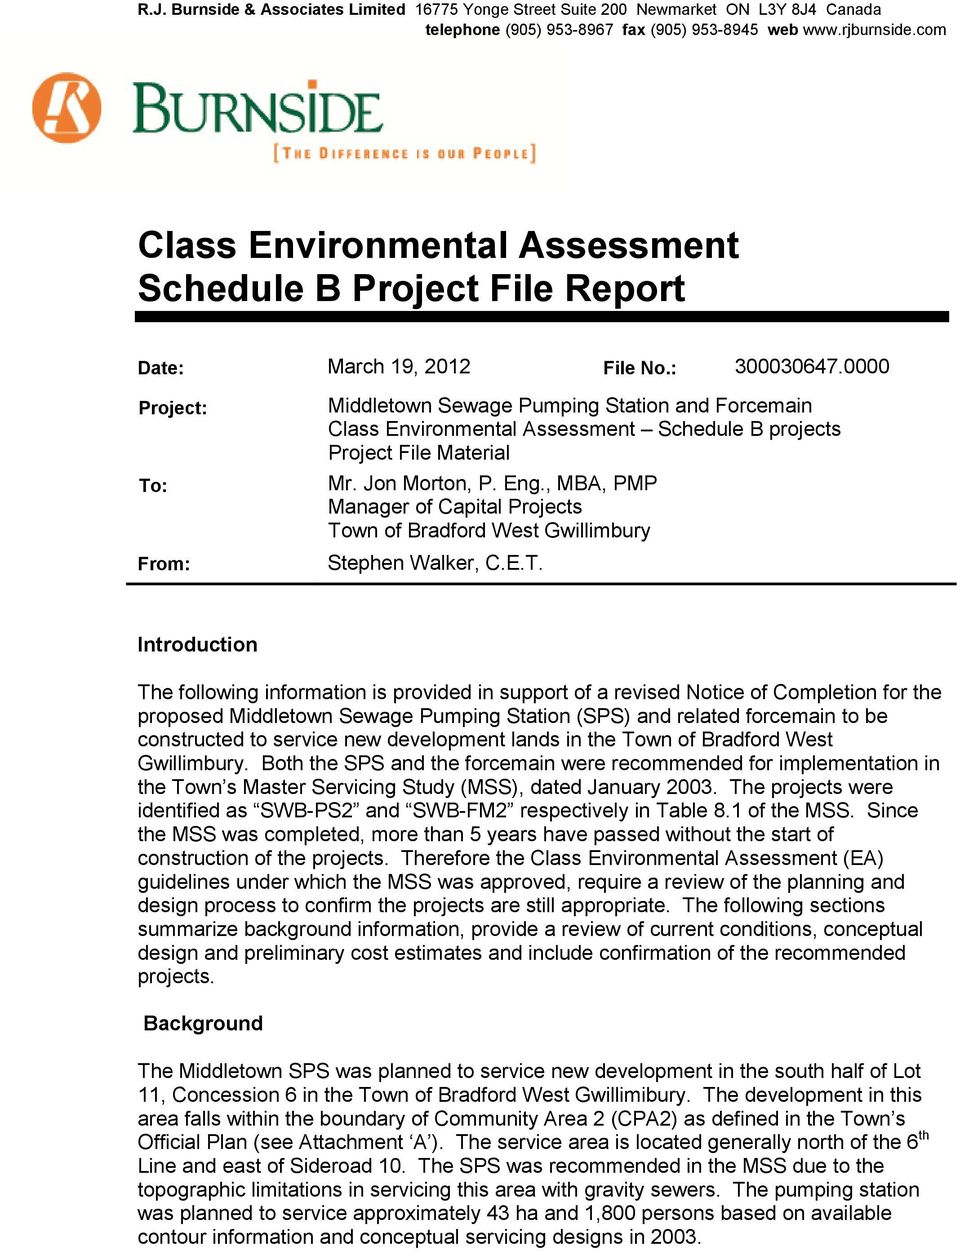 0000 Project: To: From: Middletown Sewage Pumping Station and Forcemain Class Environmental Assessment Schedule B projects Project File Material Mr. Jon Morton, P. Eng.